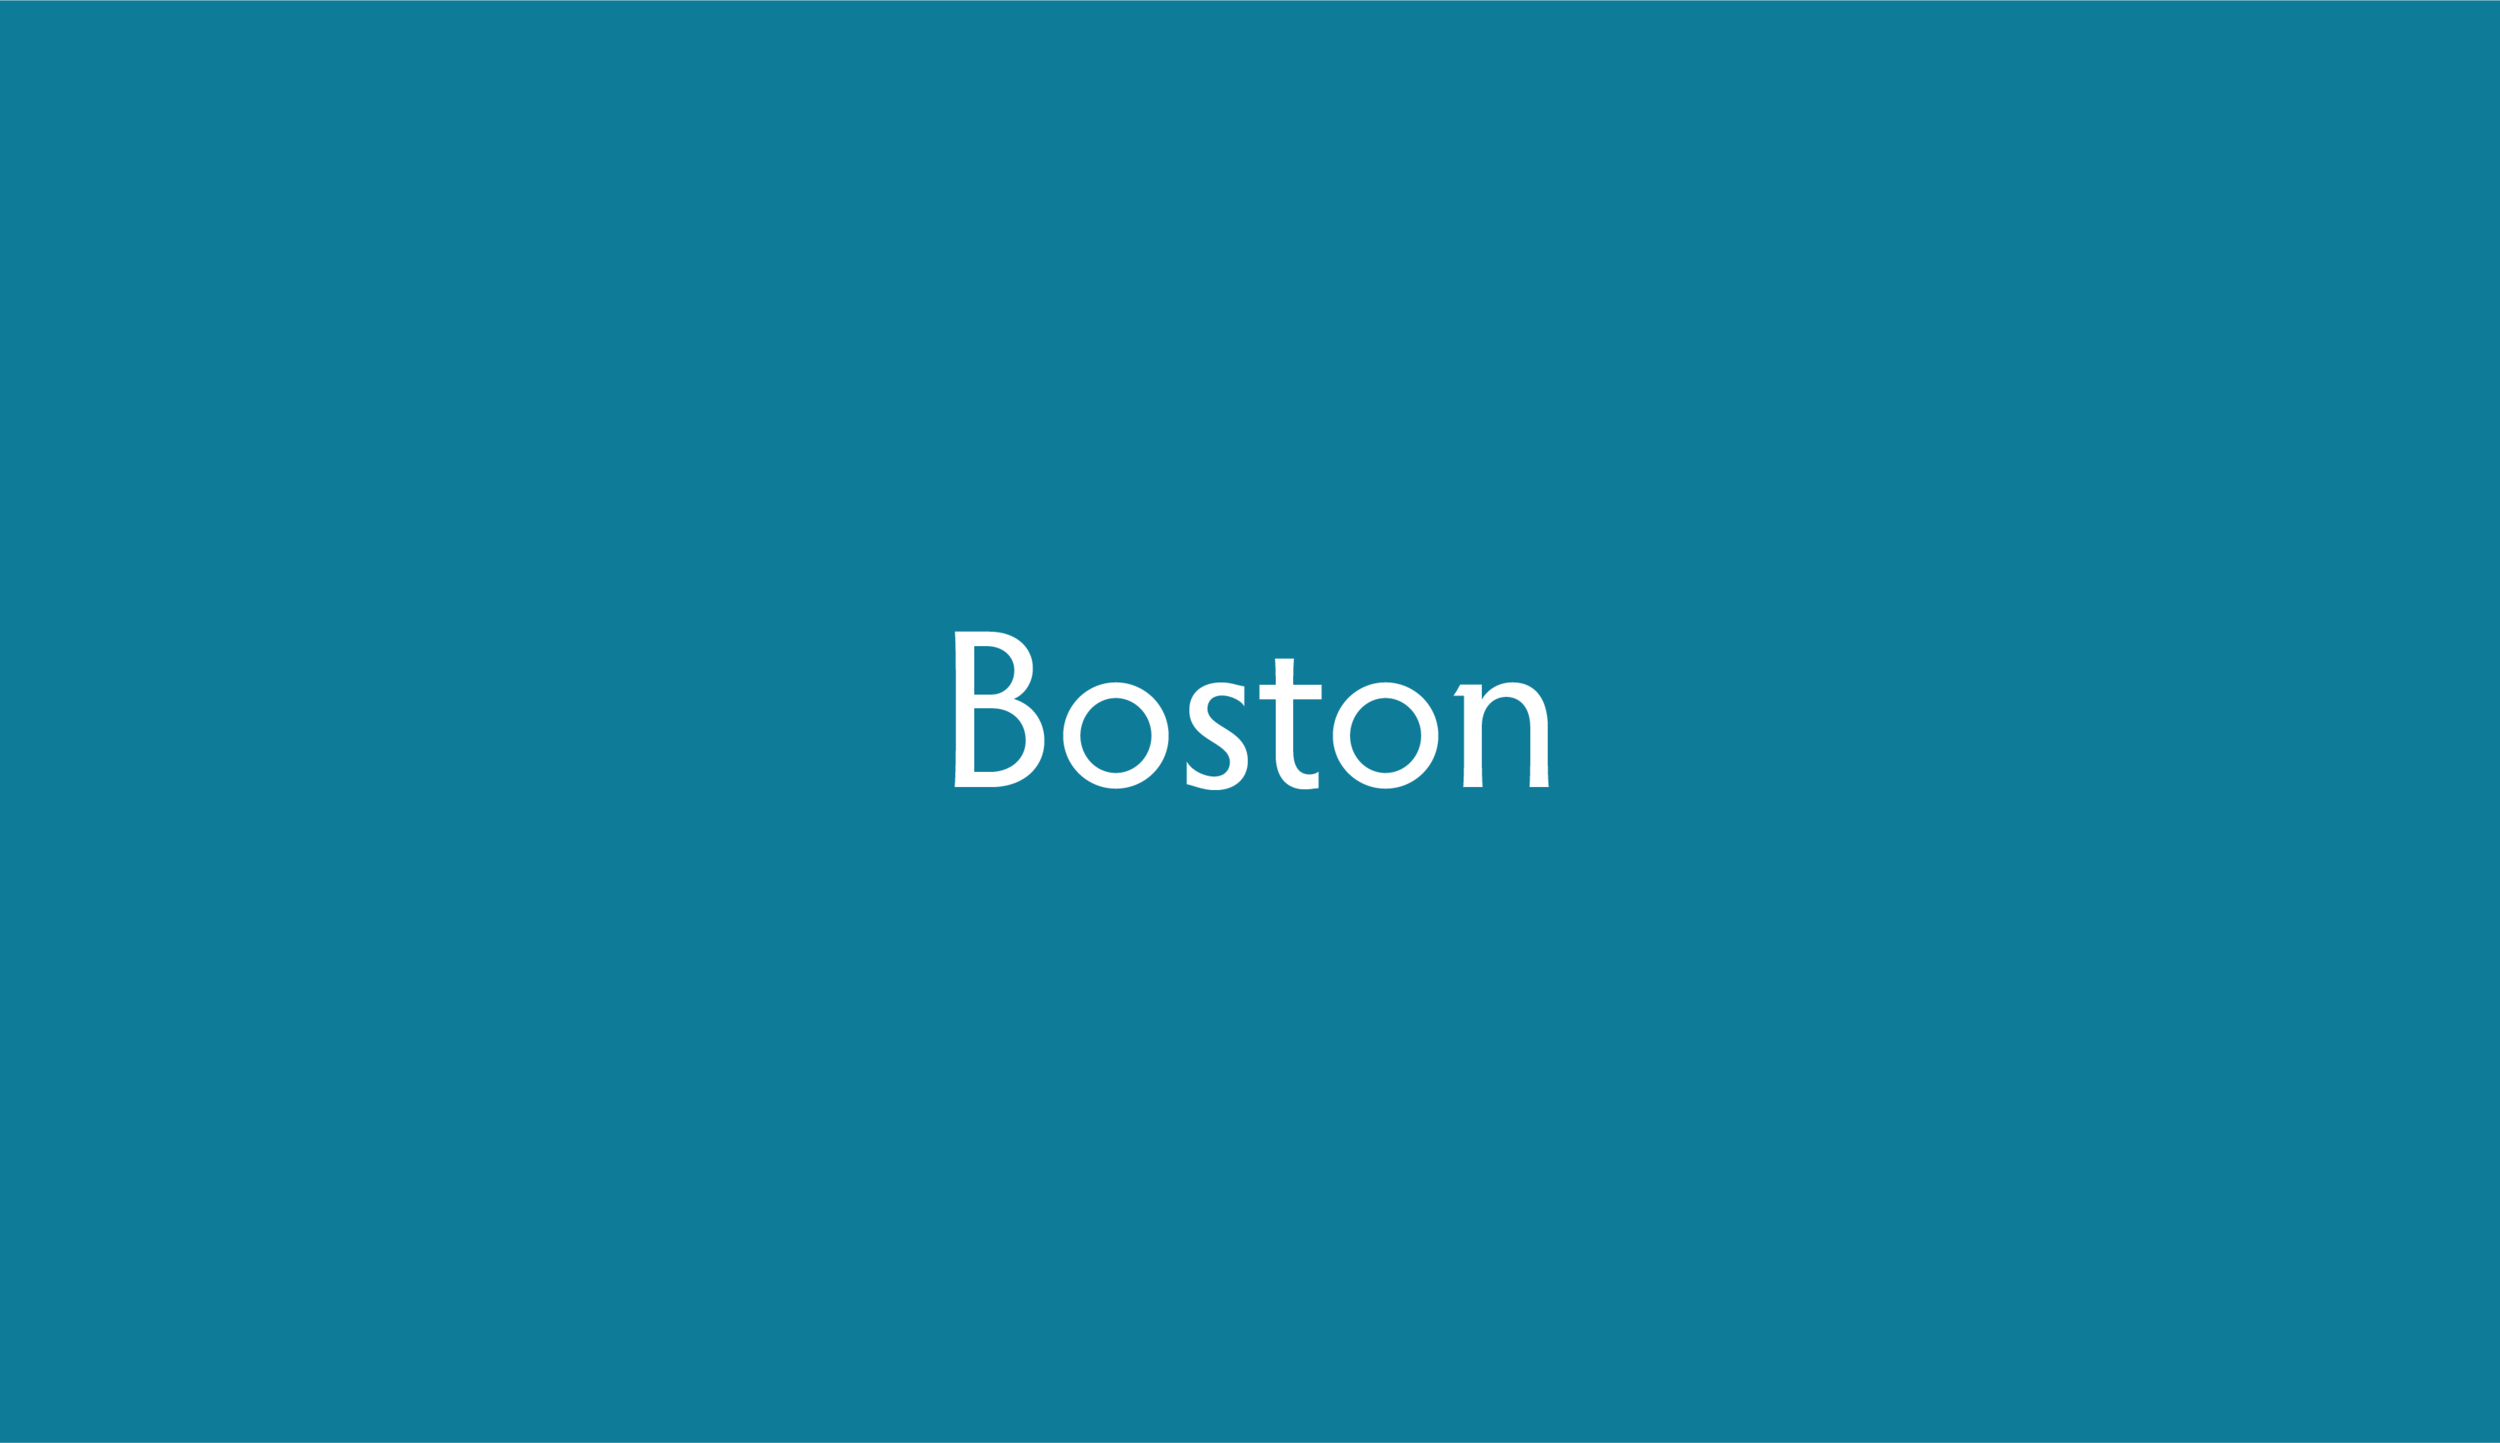 boston.png